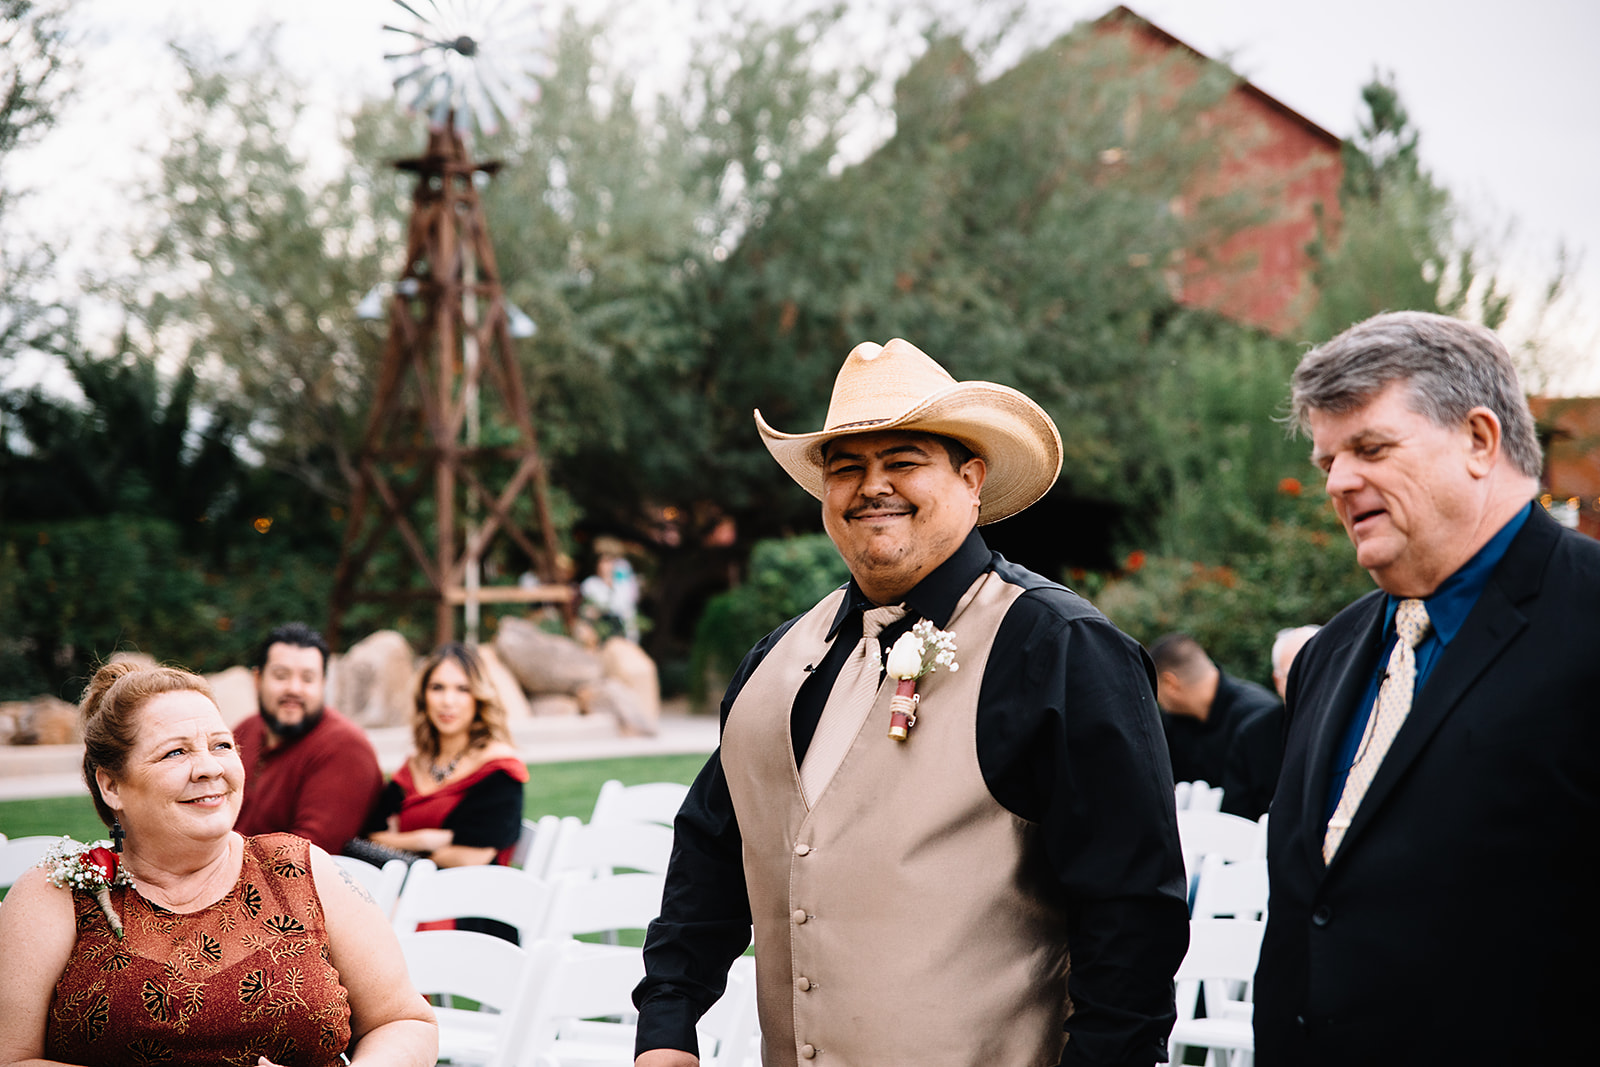 arizonaweddingphotographer8.jpg